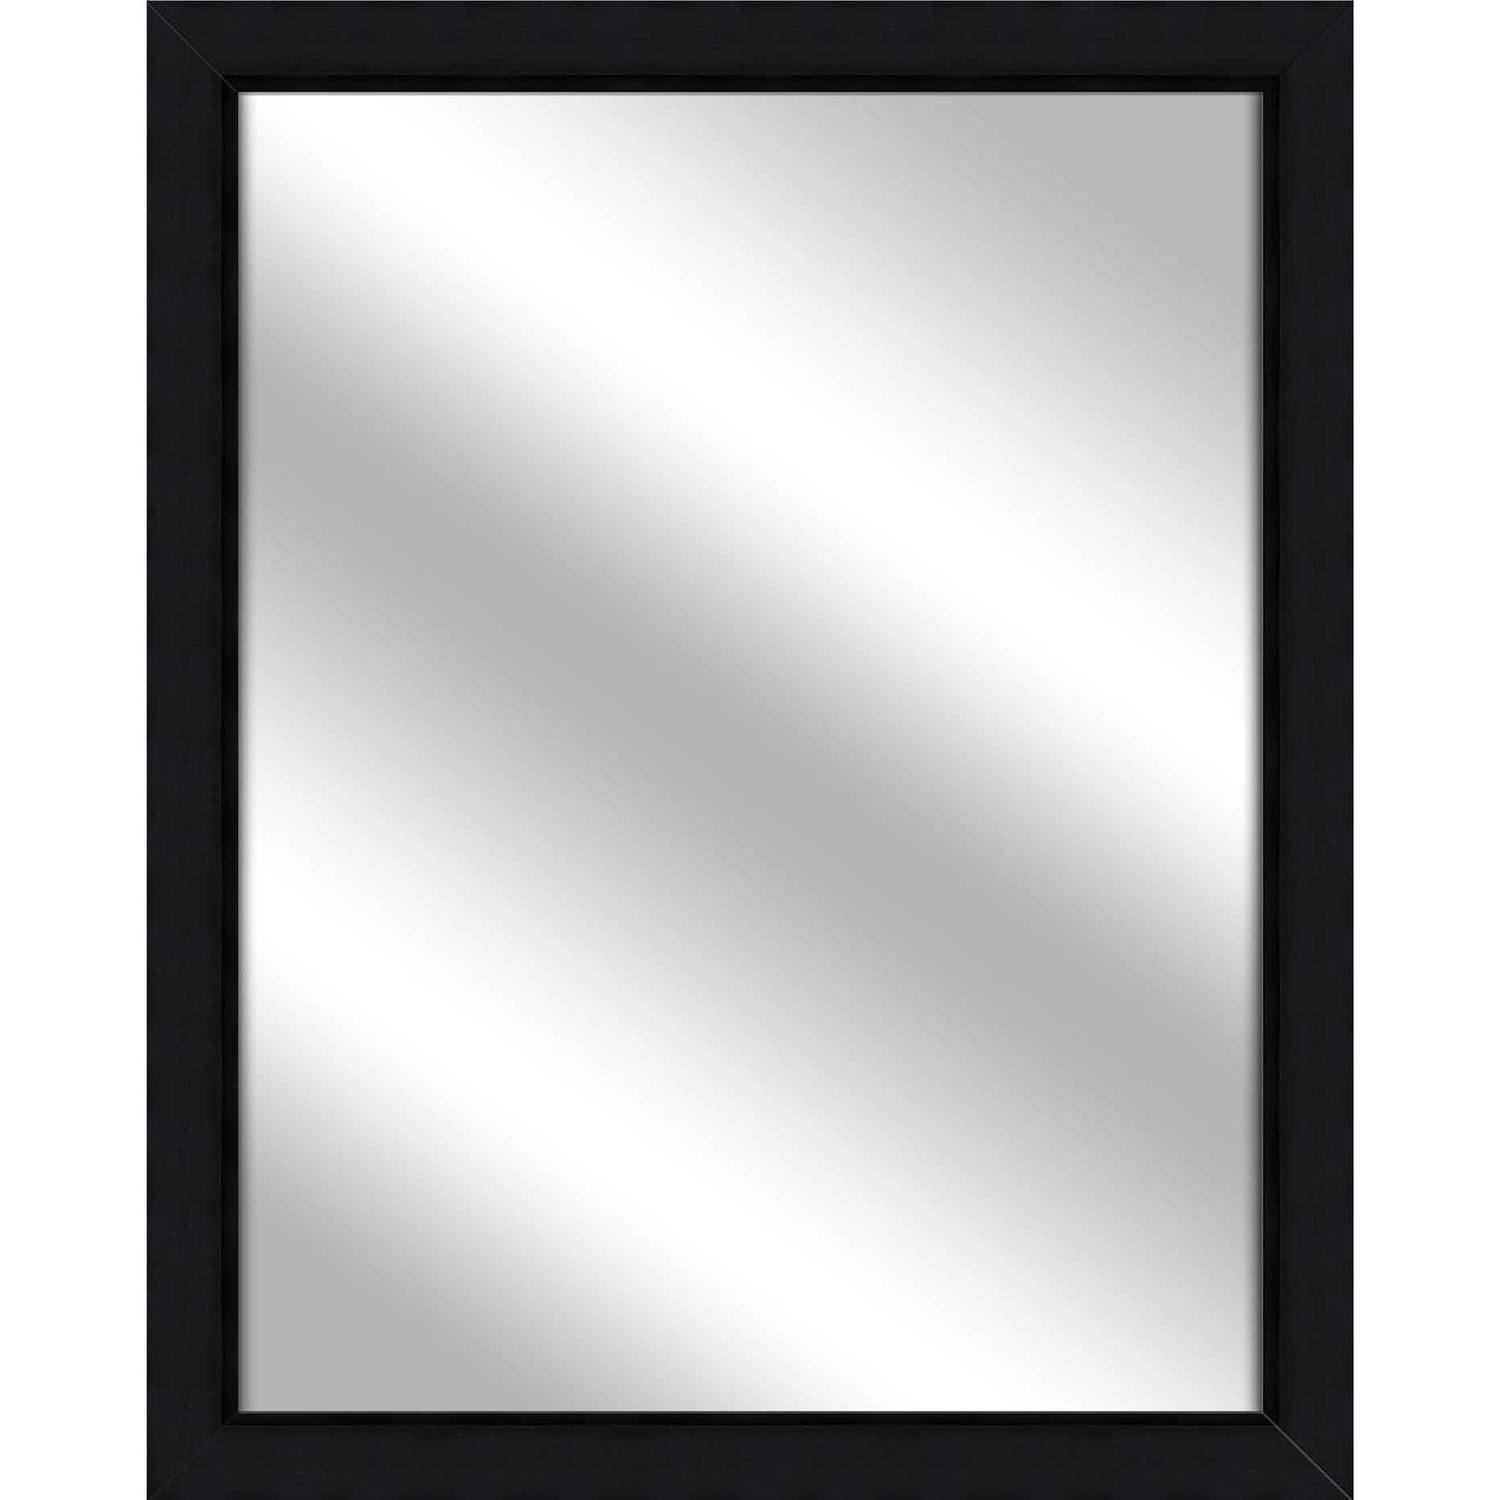 Vanity Mirror, Wood Grain Black, 24.75x30.75 by PTM Images